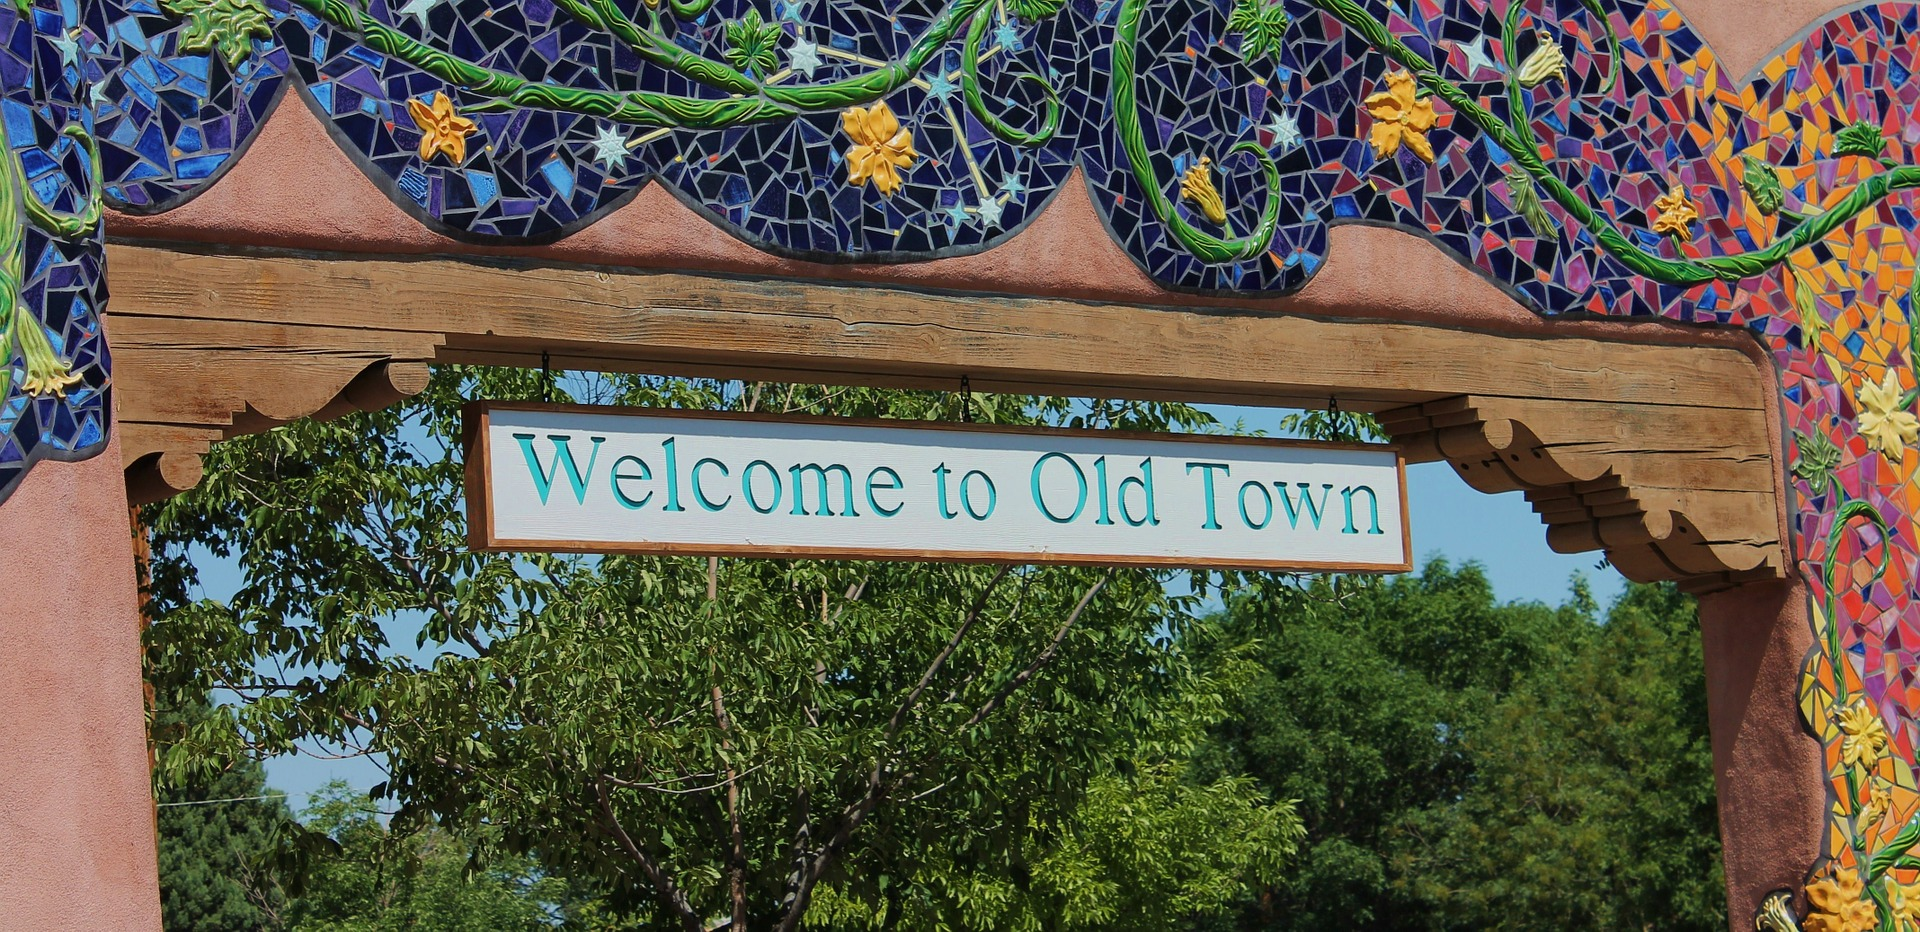 Entrance to Old Town in Albuquerqe, New Mexico